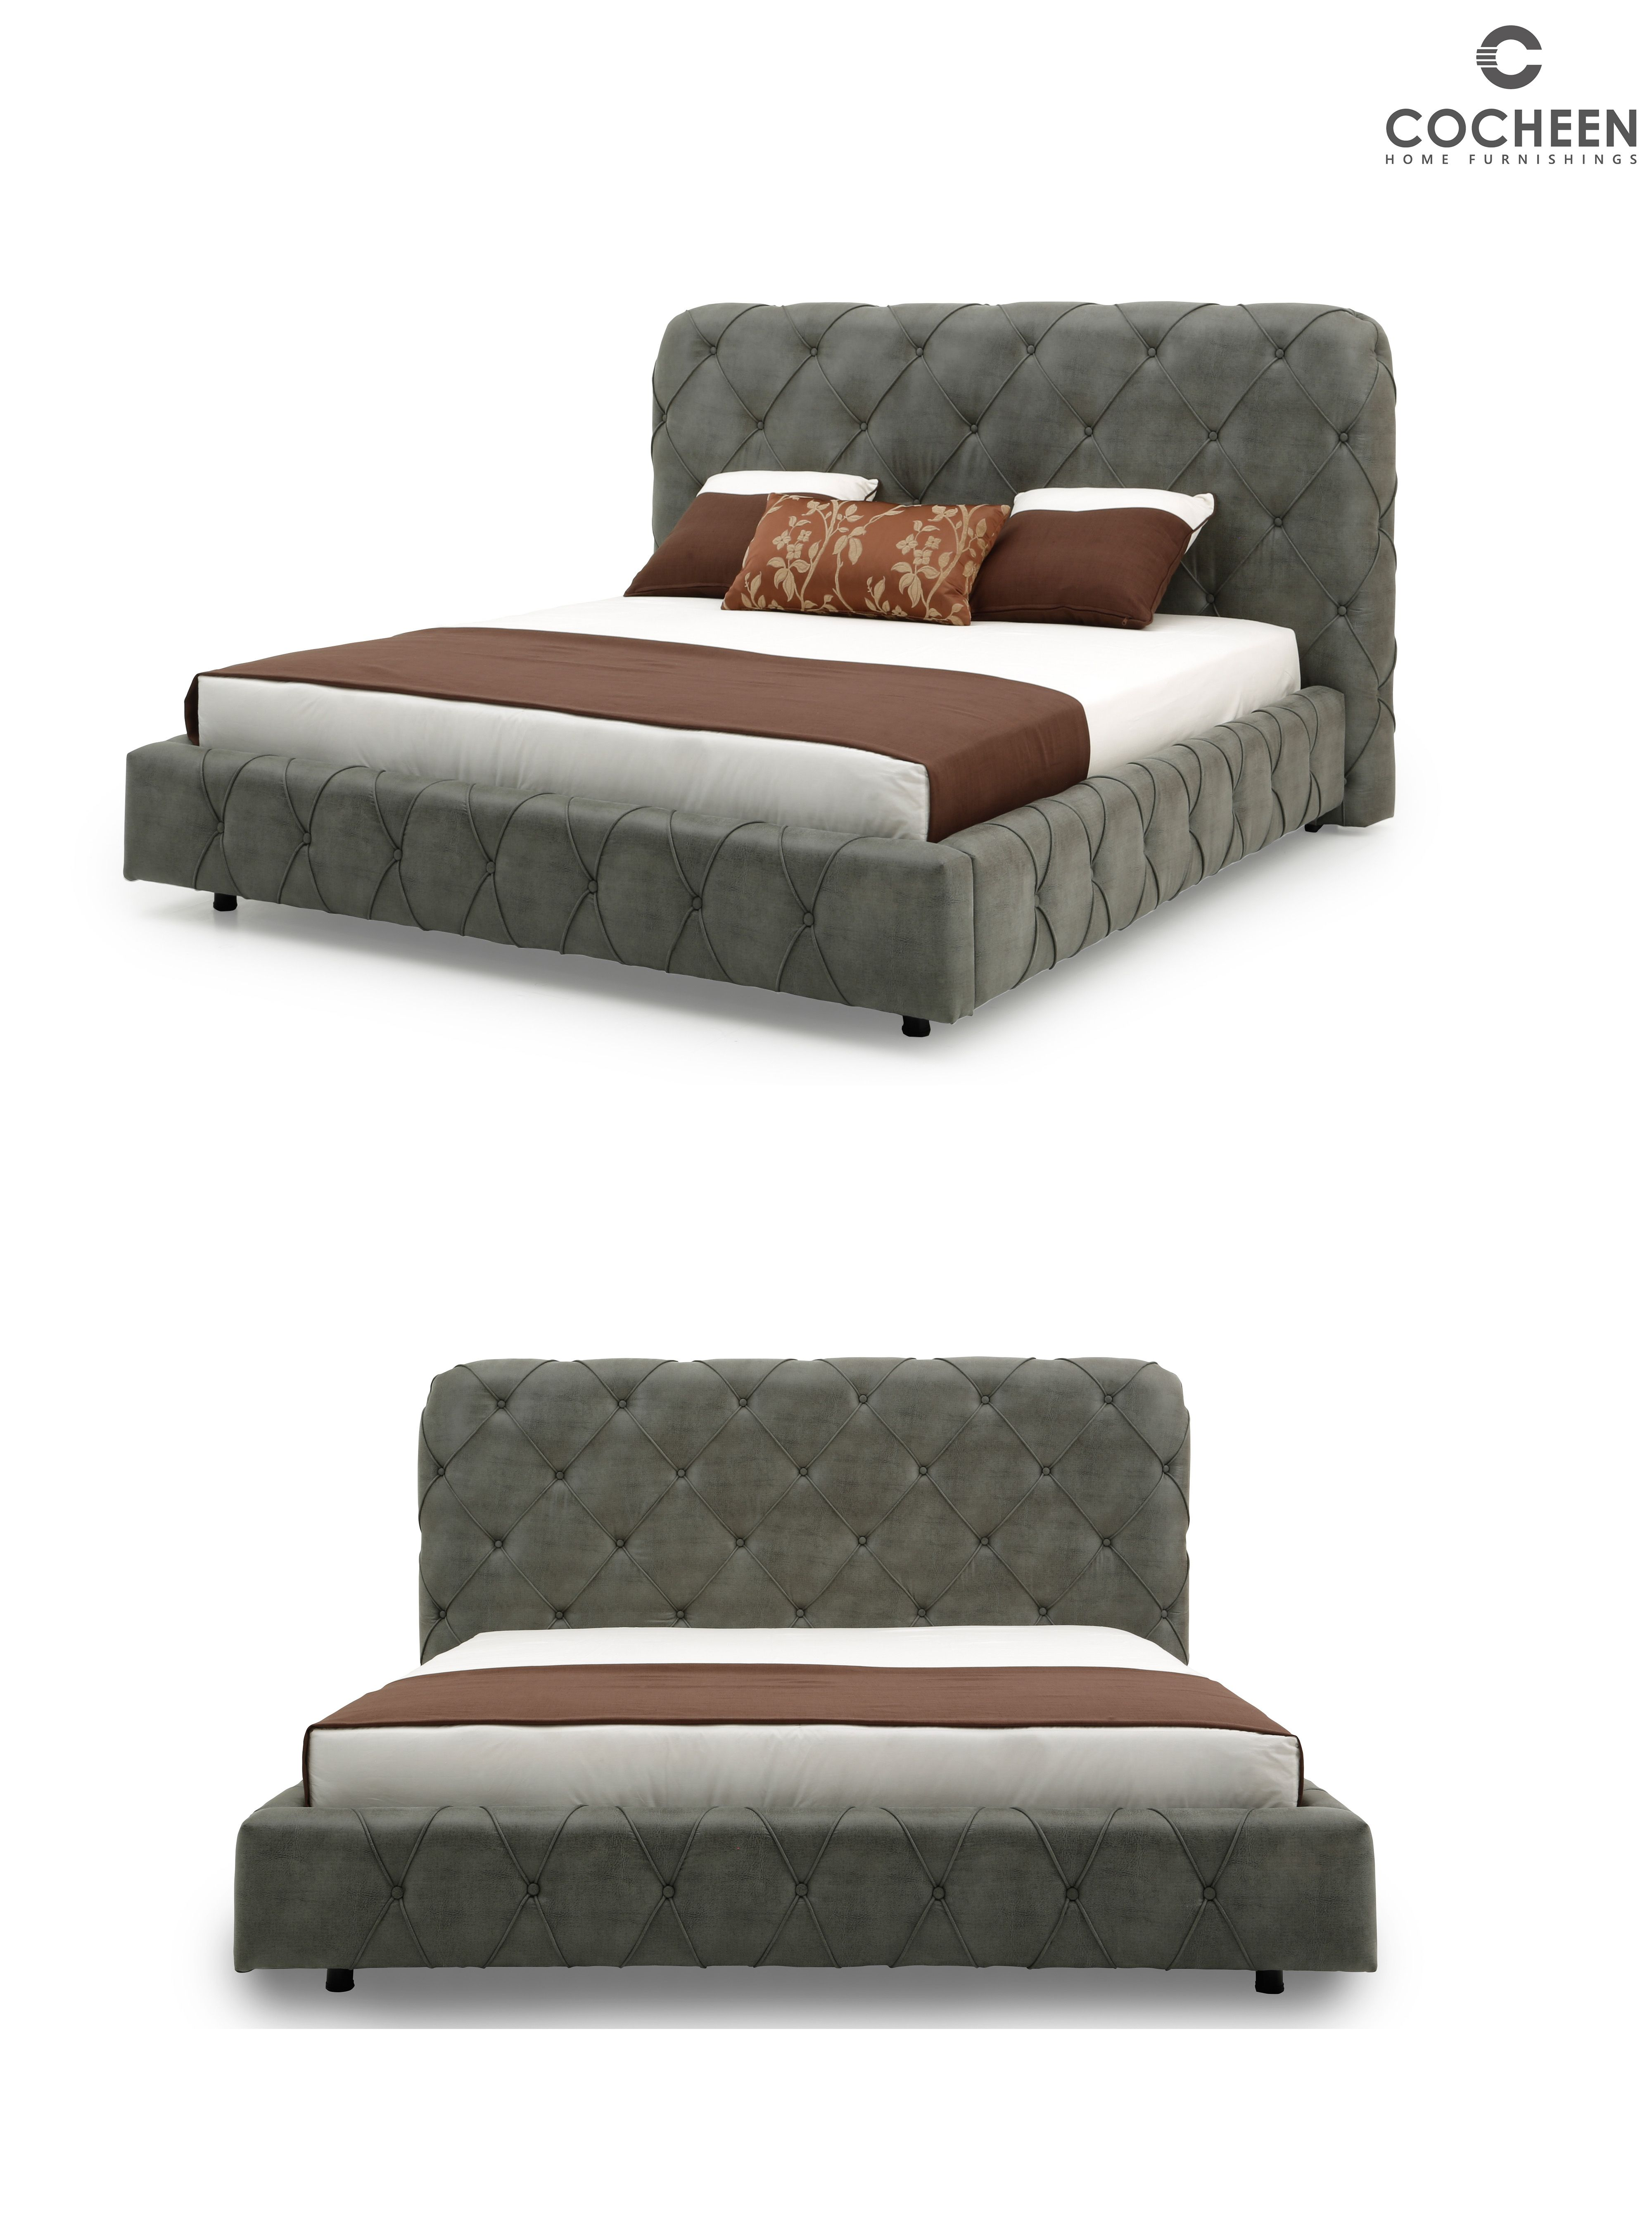 Bettsofa Element American Style Bed Accept Personalized Customization Bed Sofa